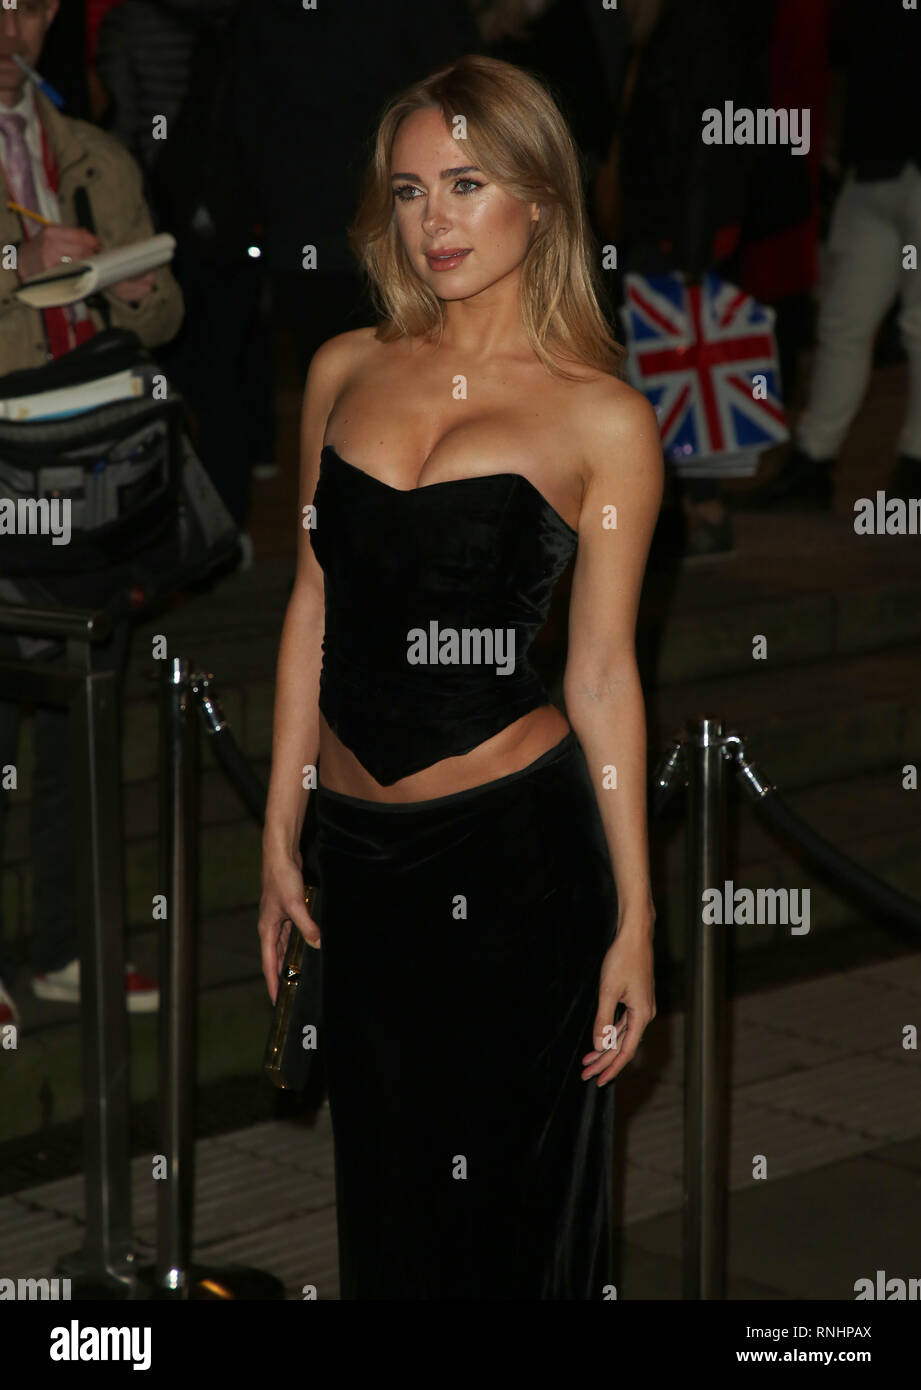 Kimberley Garner attends the Fabulous Fund Fair as part of London Fashion Week event. - Stock Image